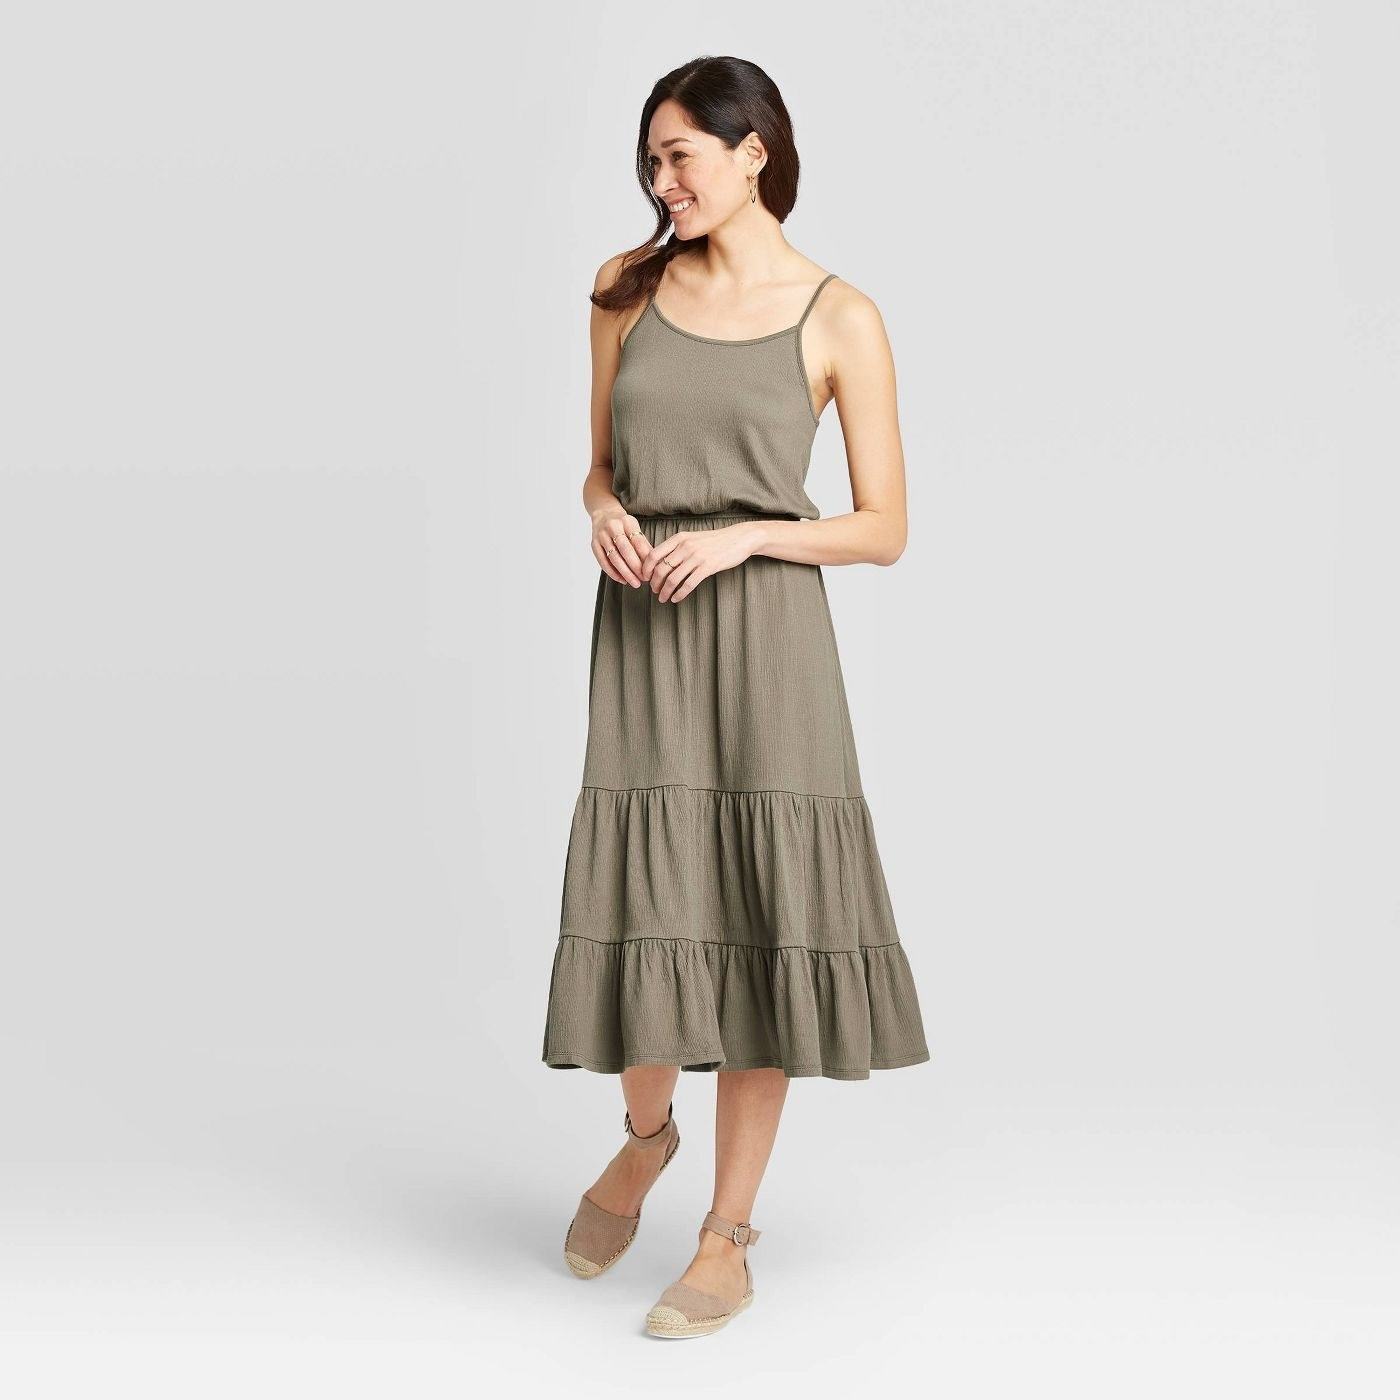 A model in a tiered olive green maxi dress